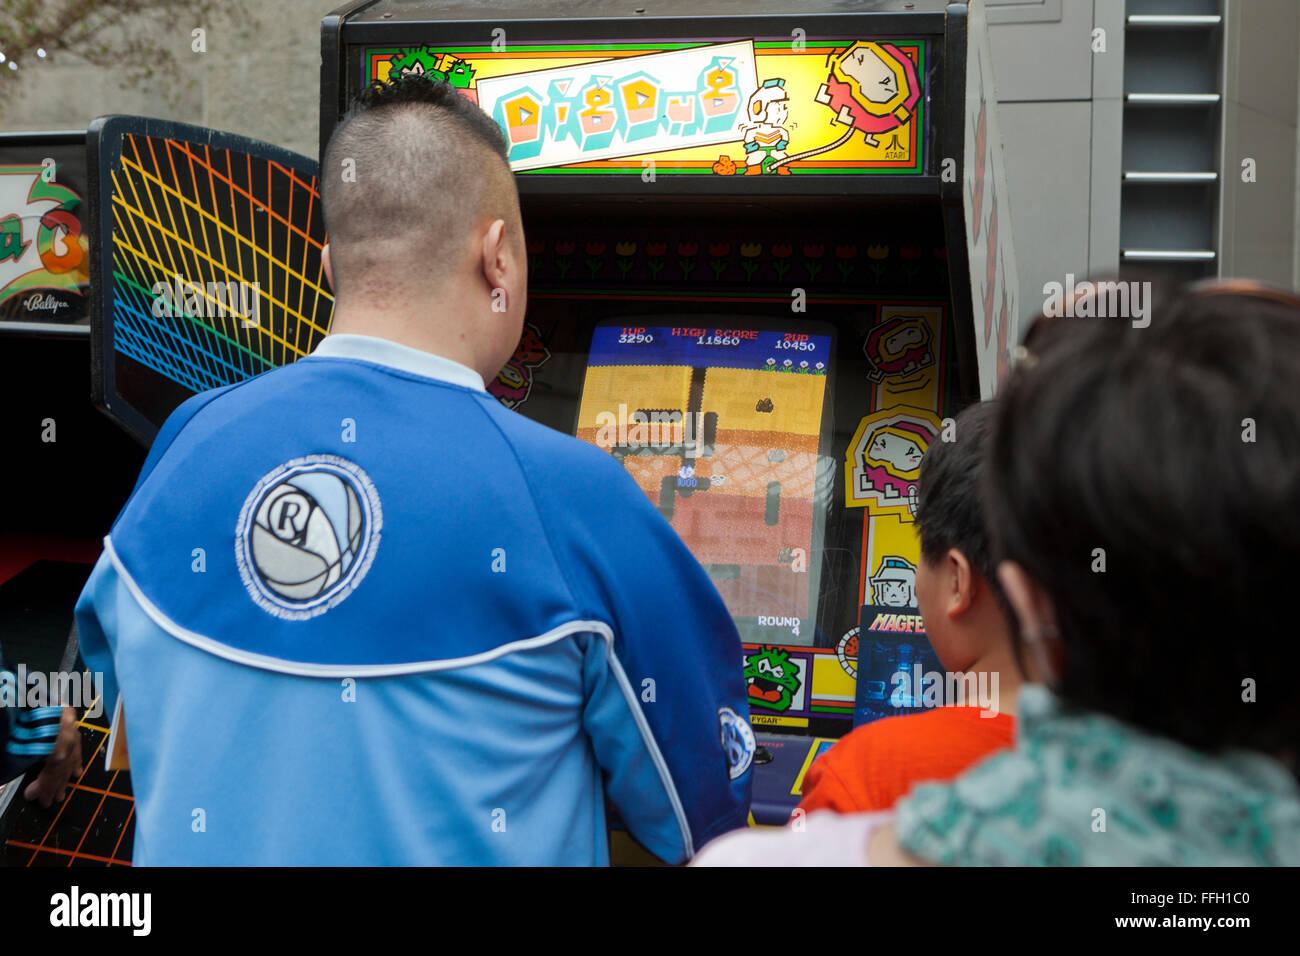 Young man playing Dig Dug arcade video game - USA - Stock Image